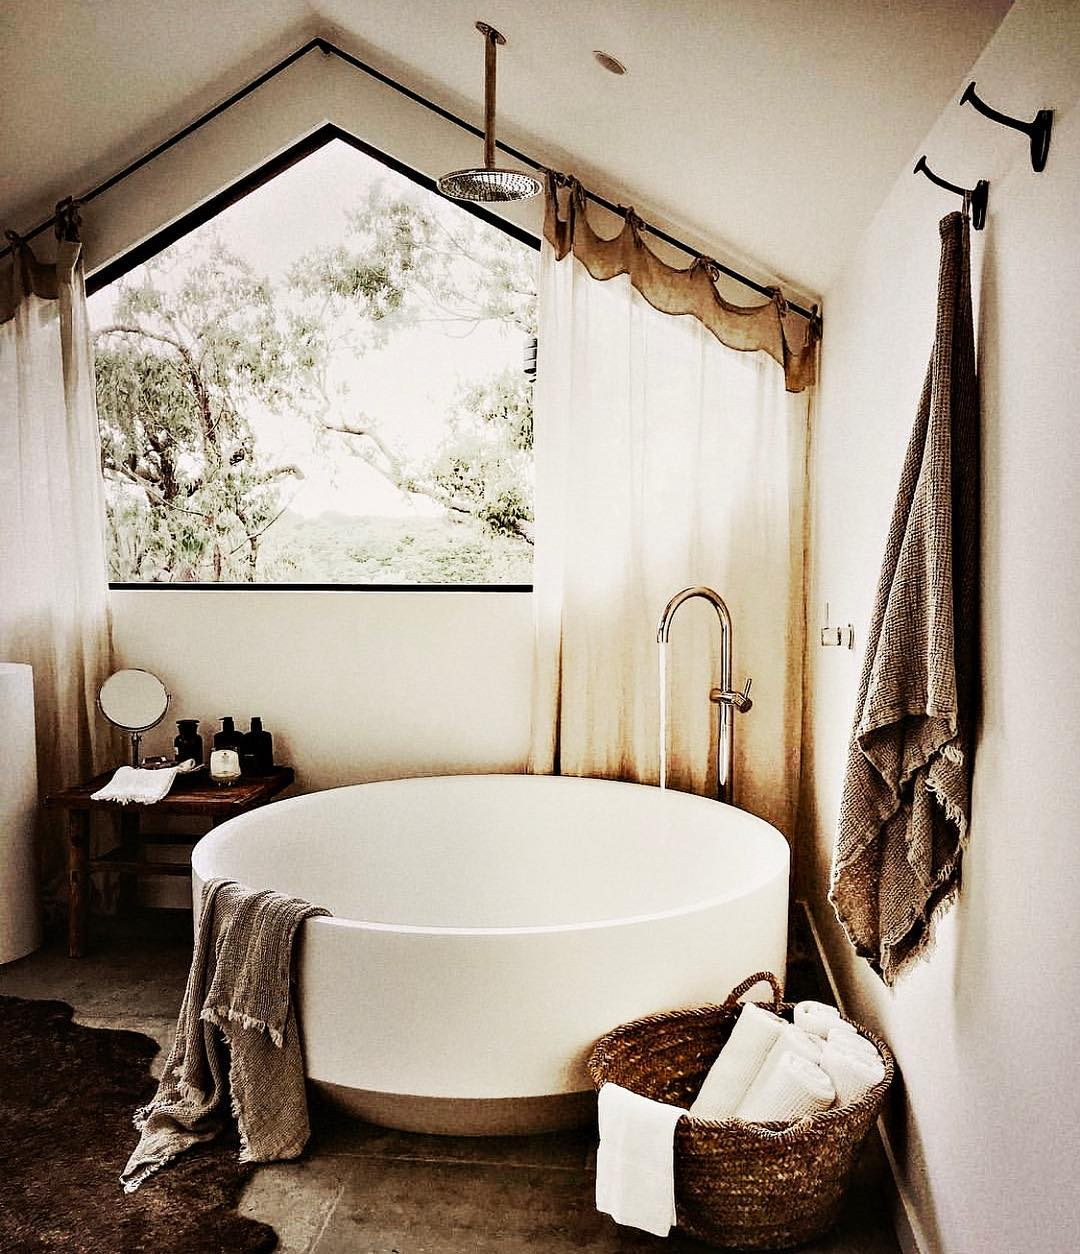 30+ OF THE MOST BEAUTIFUL BATHROOM DESIGNS 2019 - Page 23 ...